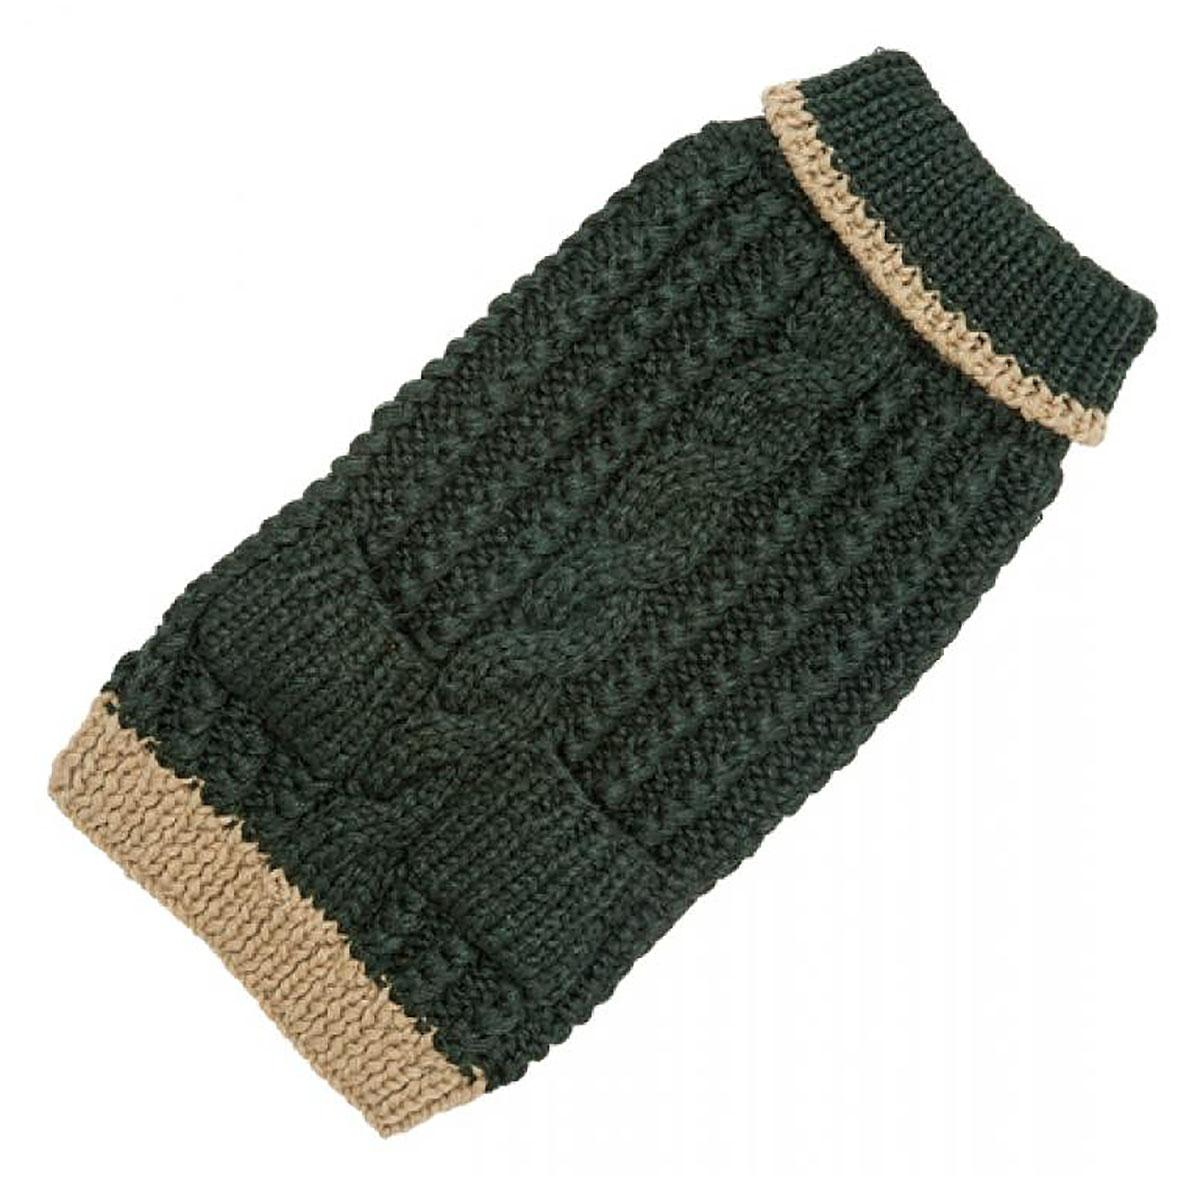 Hand Knit Dog Sweater by Up Country - Forest Classic Cable